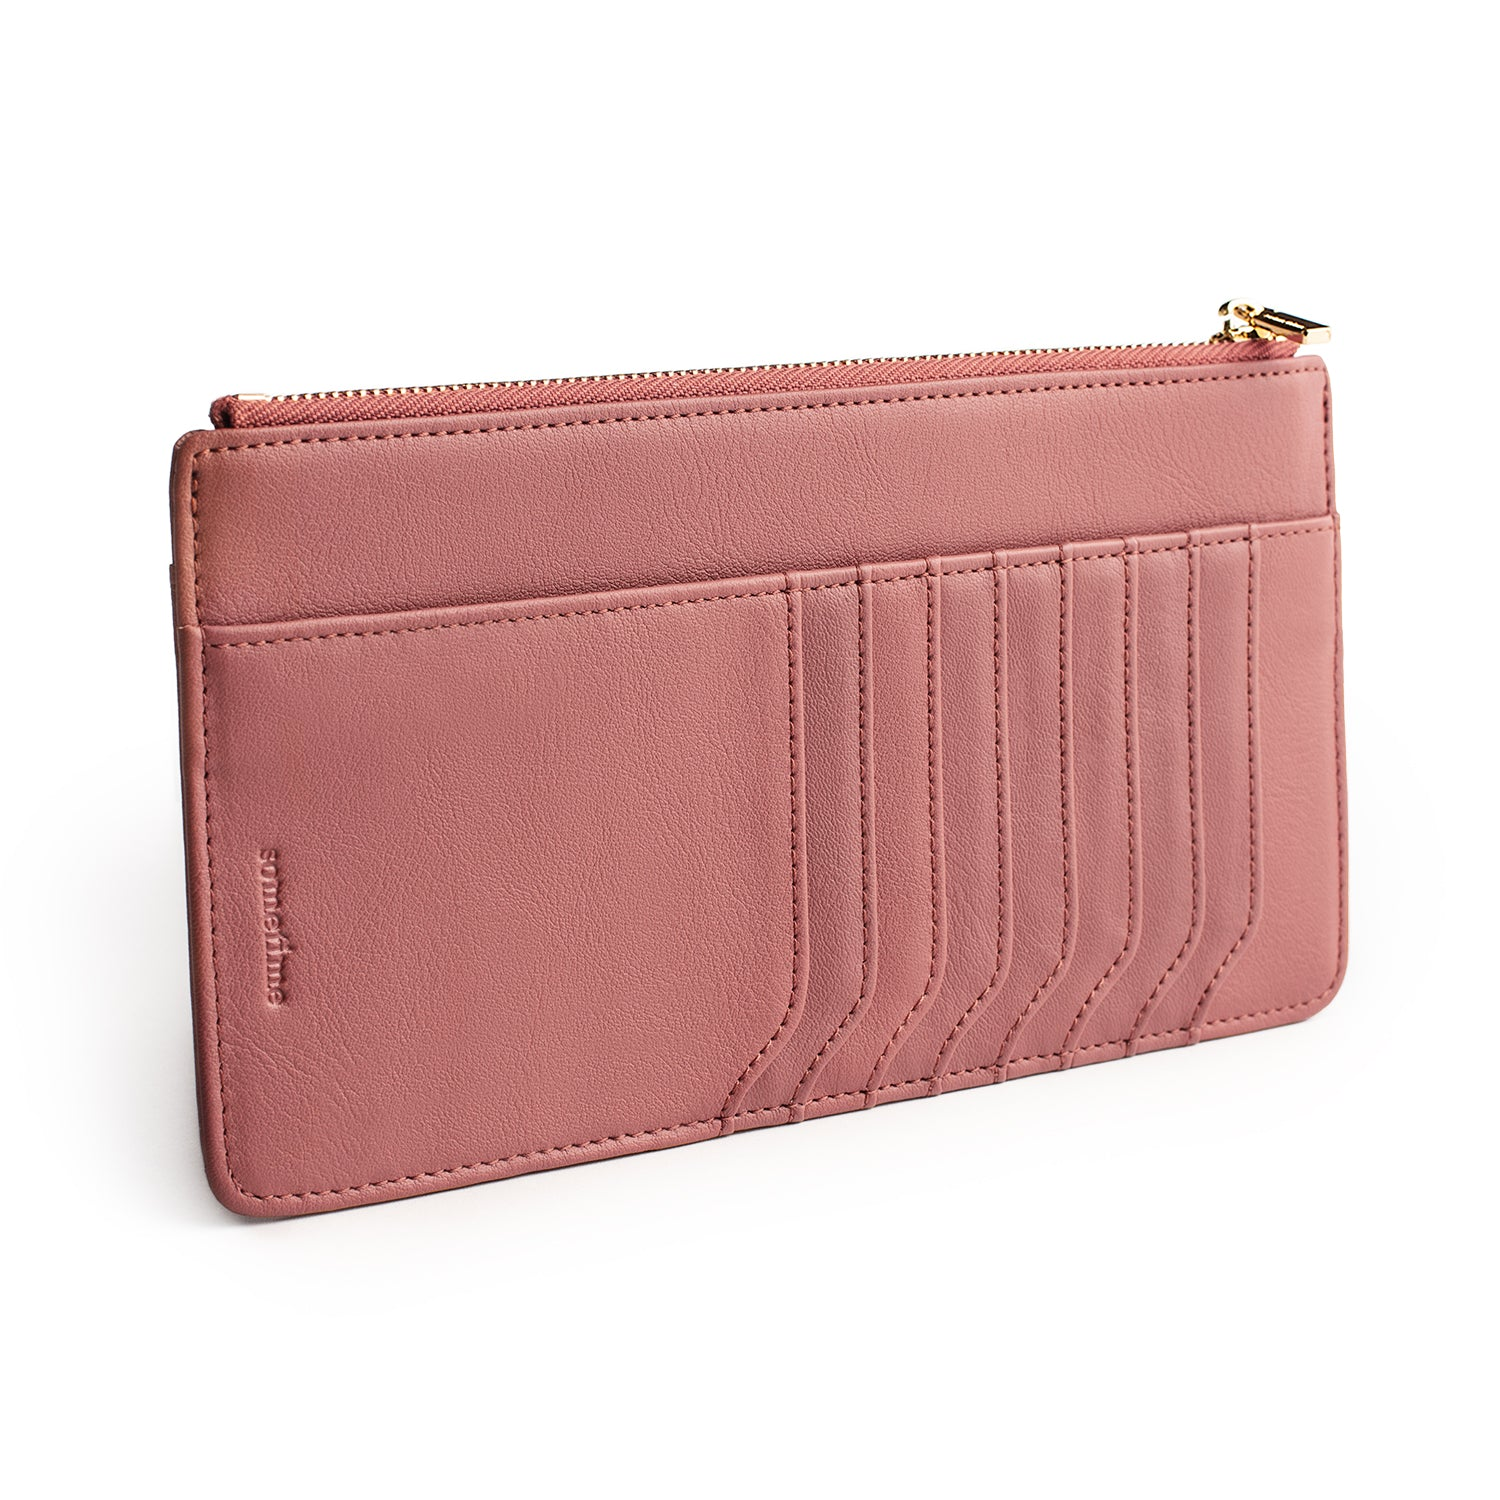 Escard L - Dusty Pink